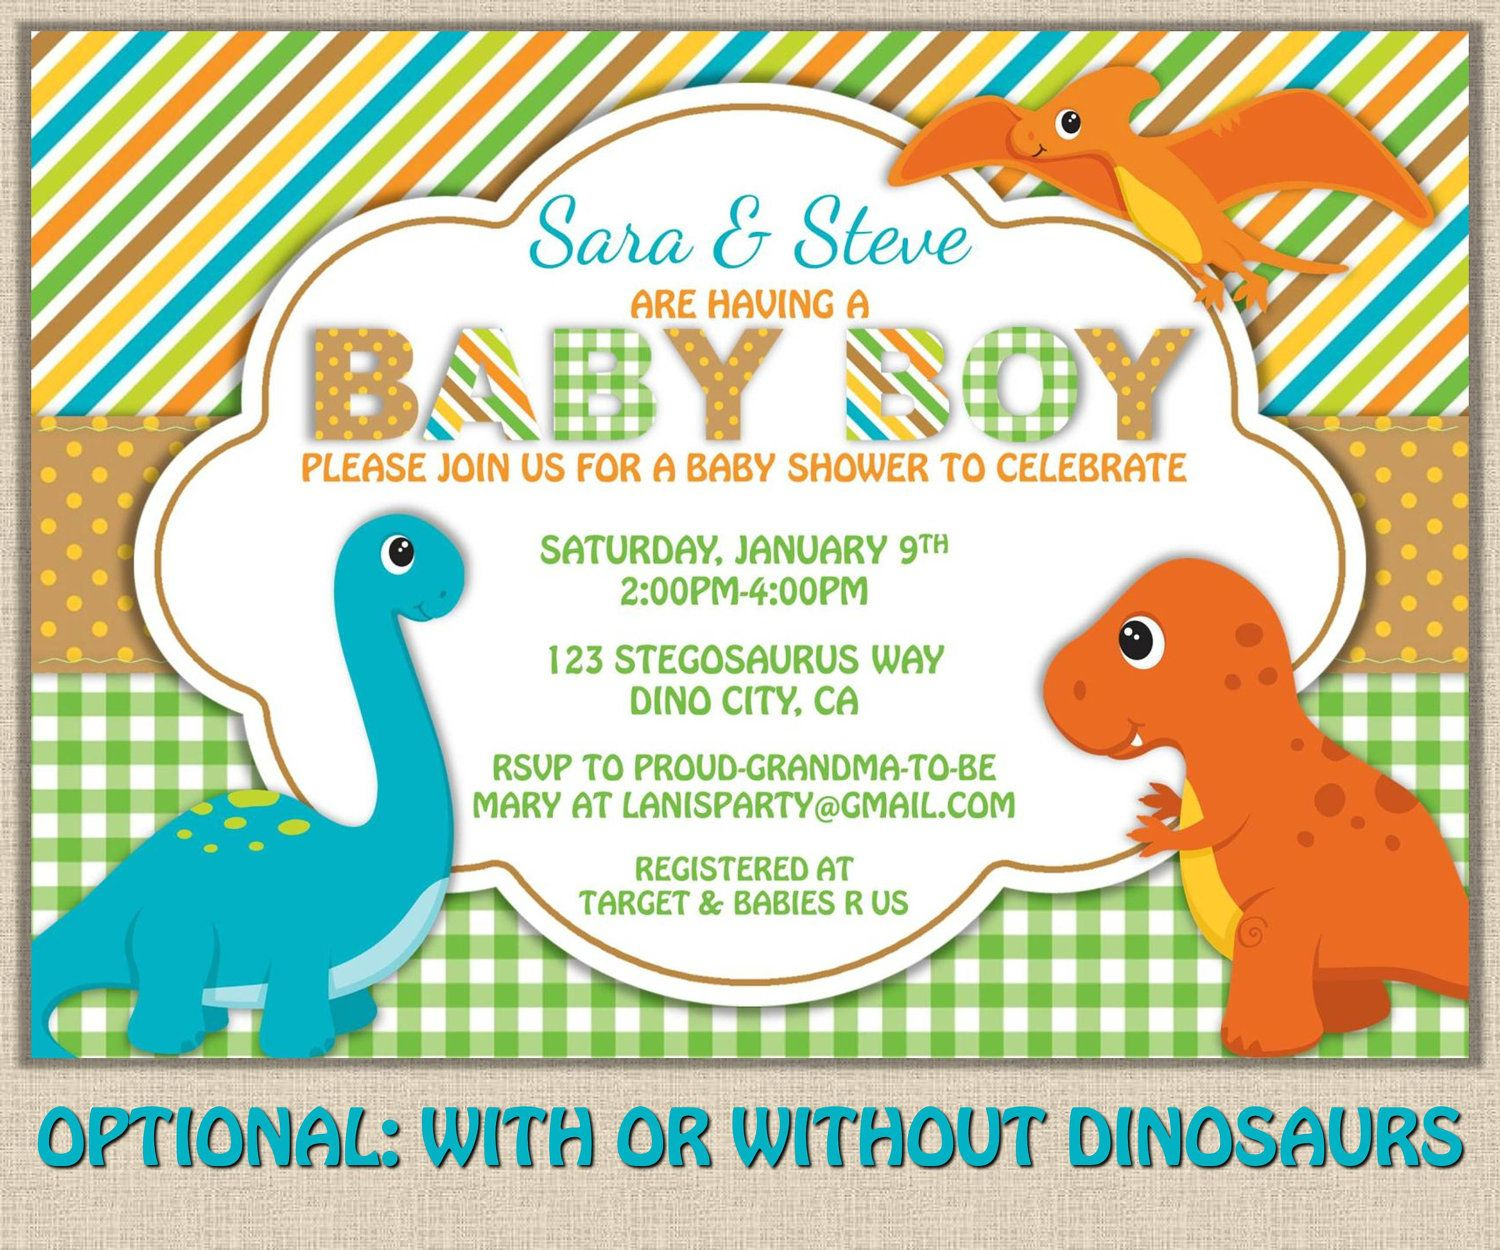 Free Printable Dinosaur Baby Shower Invitation | My Kaden - Free Printable Dinosaur Baby Shower Invitations